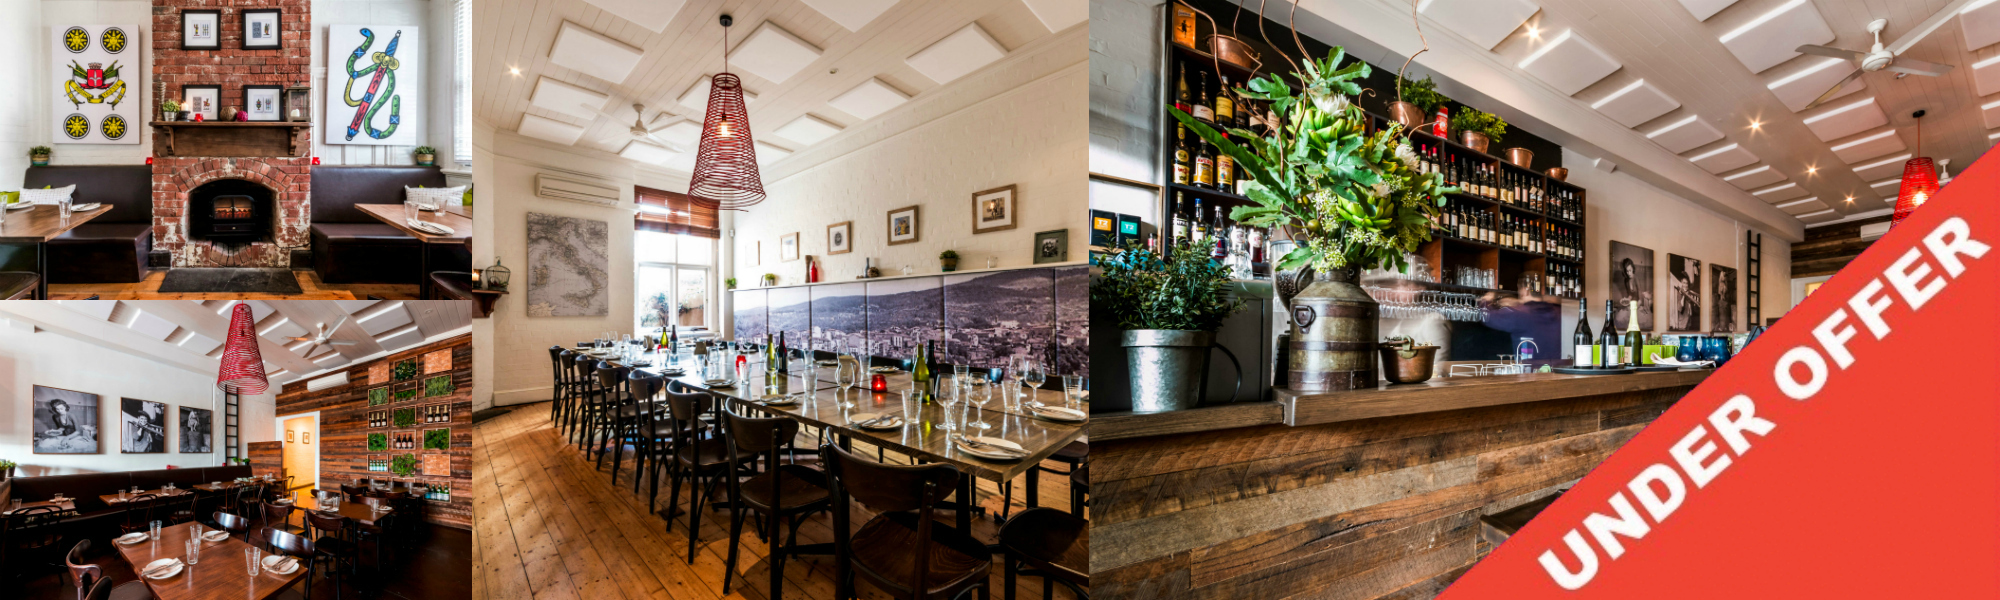 UNDER CONTRACT – Traditional Italian Restaurant in the Heart of Ivanhoe (Our Ref: V975)